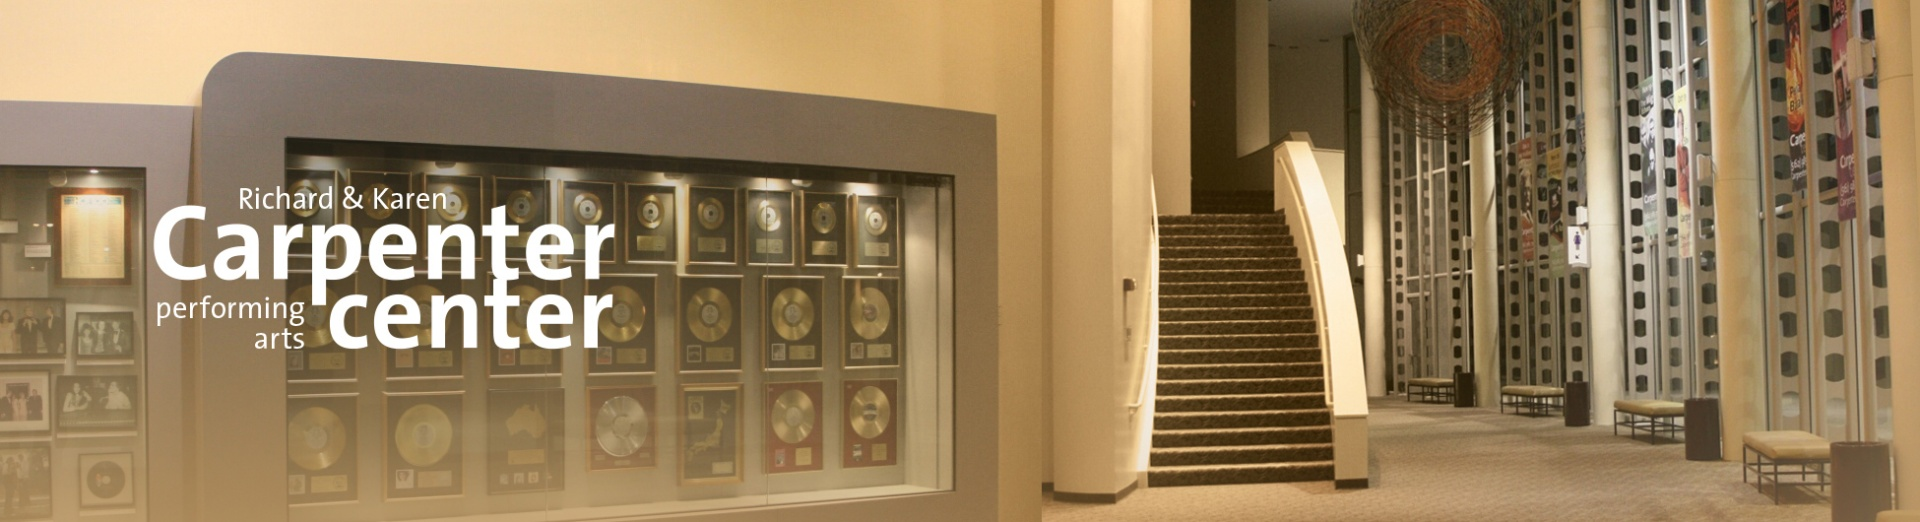 The interior of the Carpenter Center lobby with a case of gold records by the Carpenters visible along one wall.